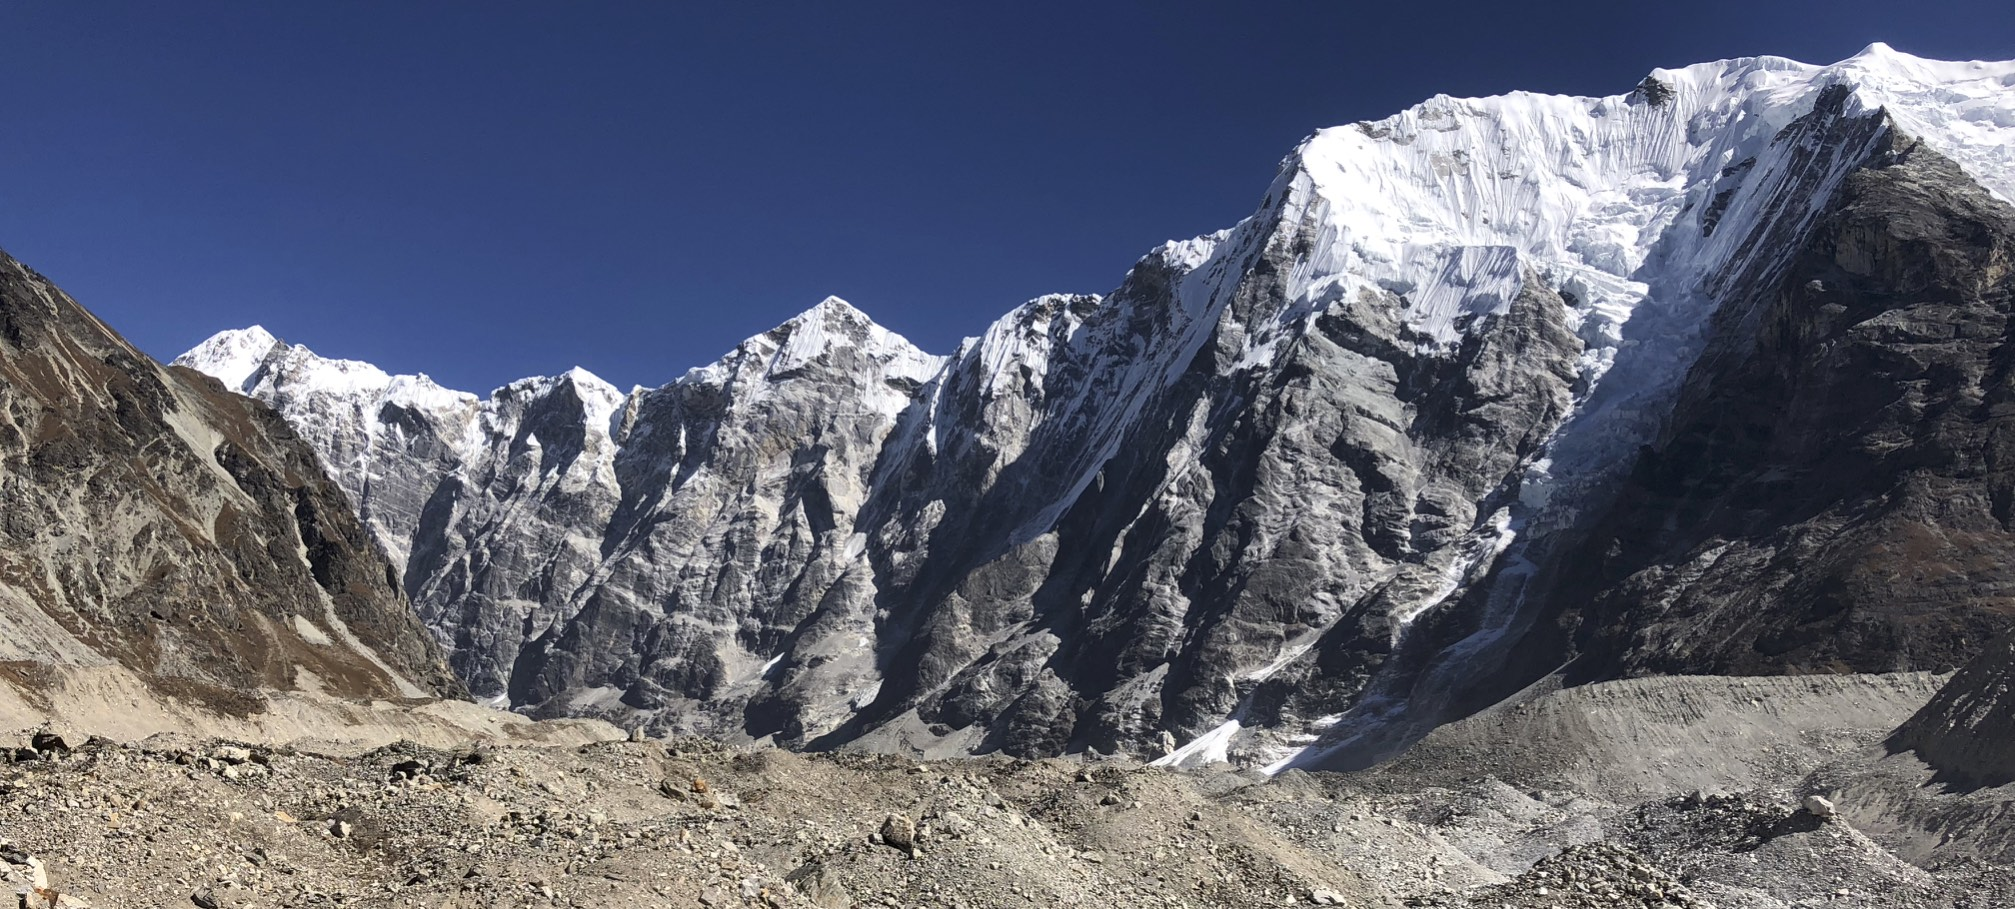 On the Langtang Glacier - the wall of 6,000m is blocking the view of Mt. Shishapangma hiding right behind them.